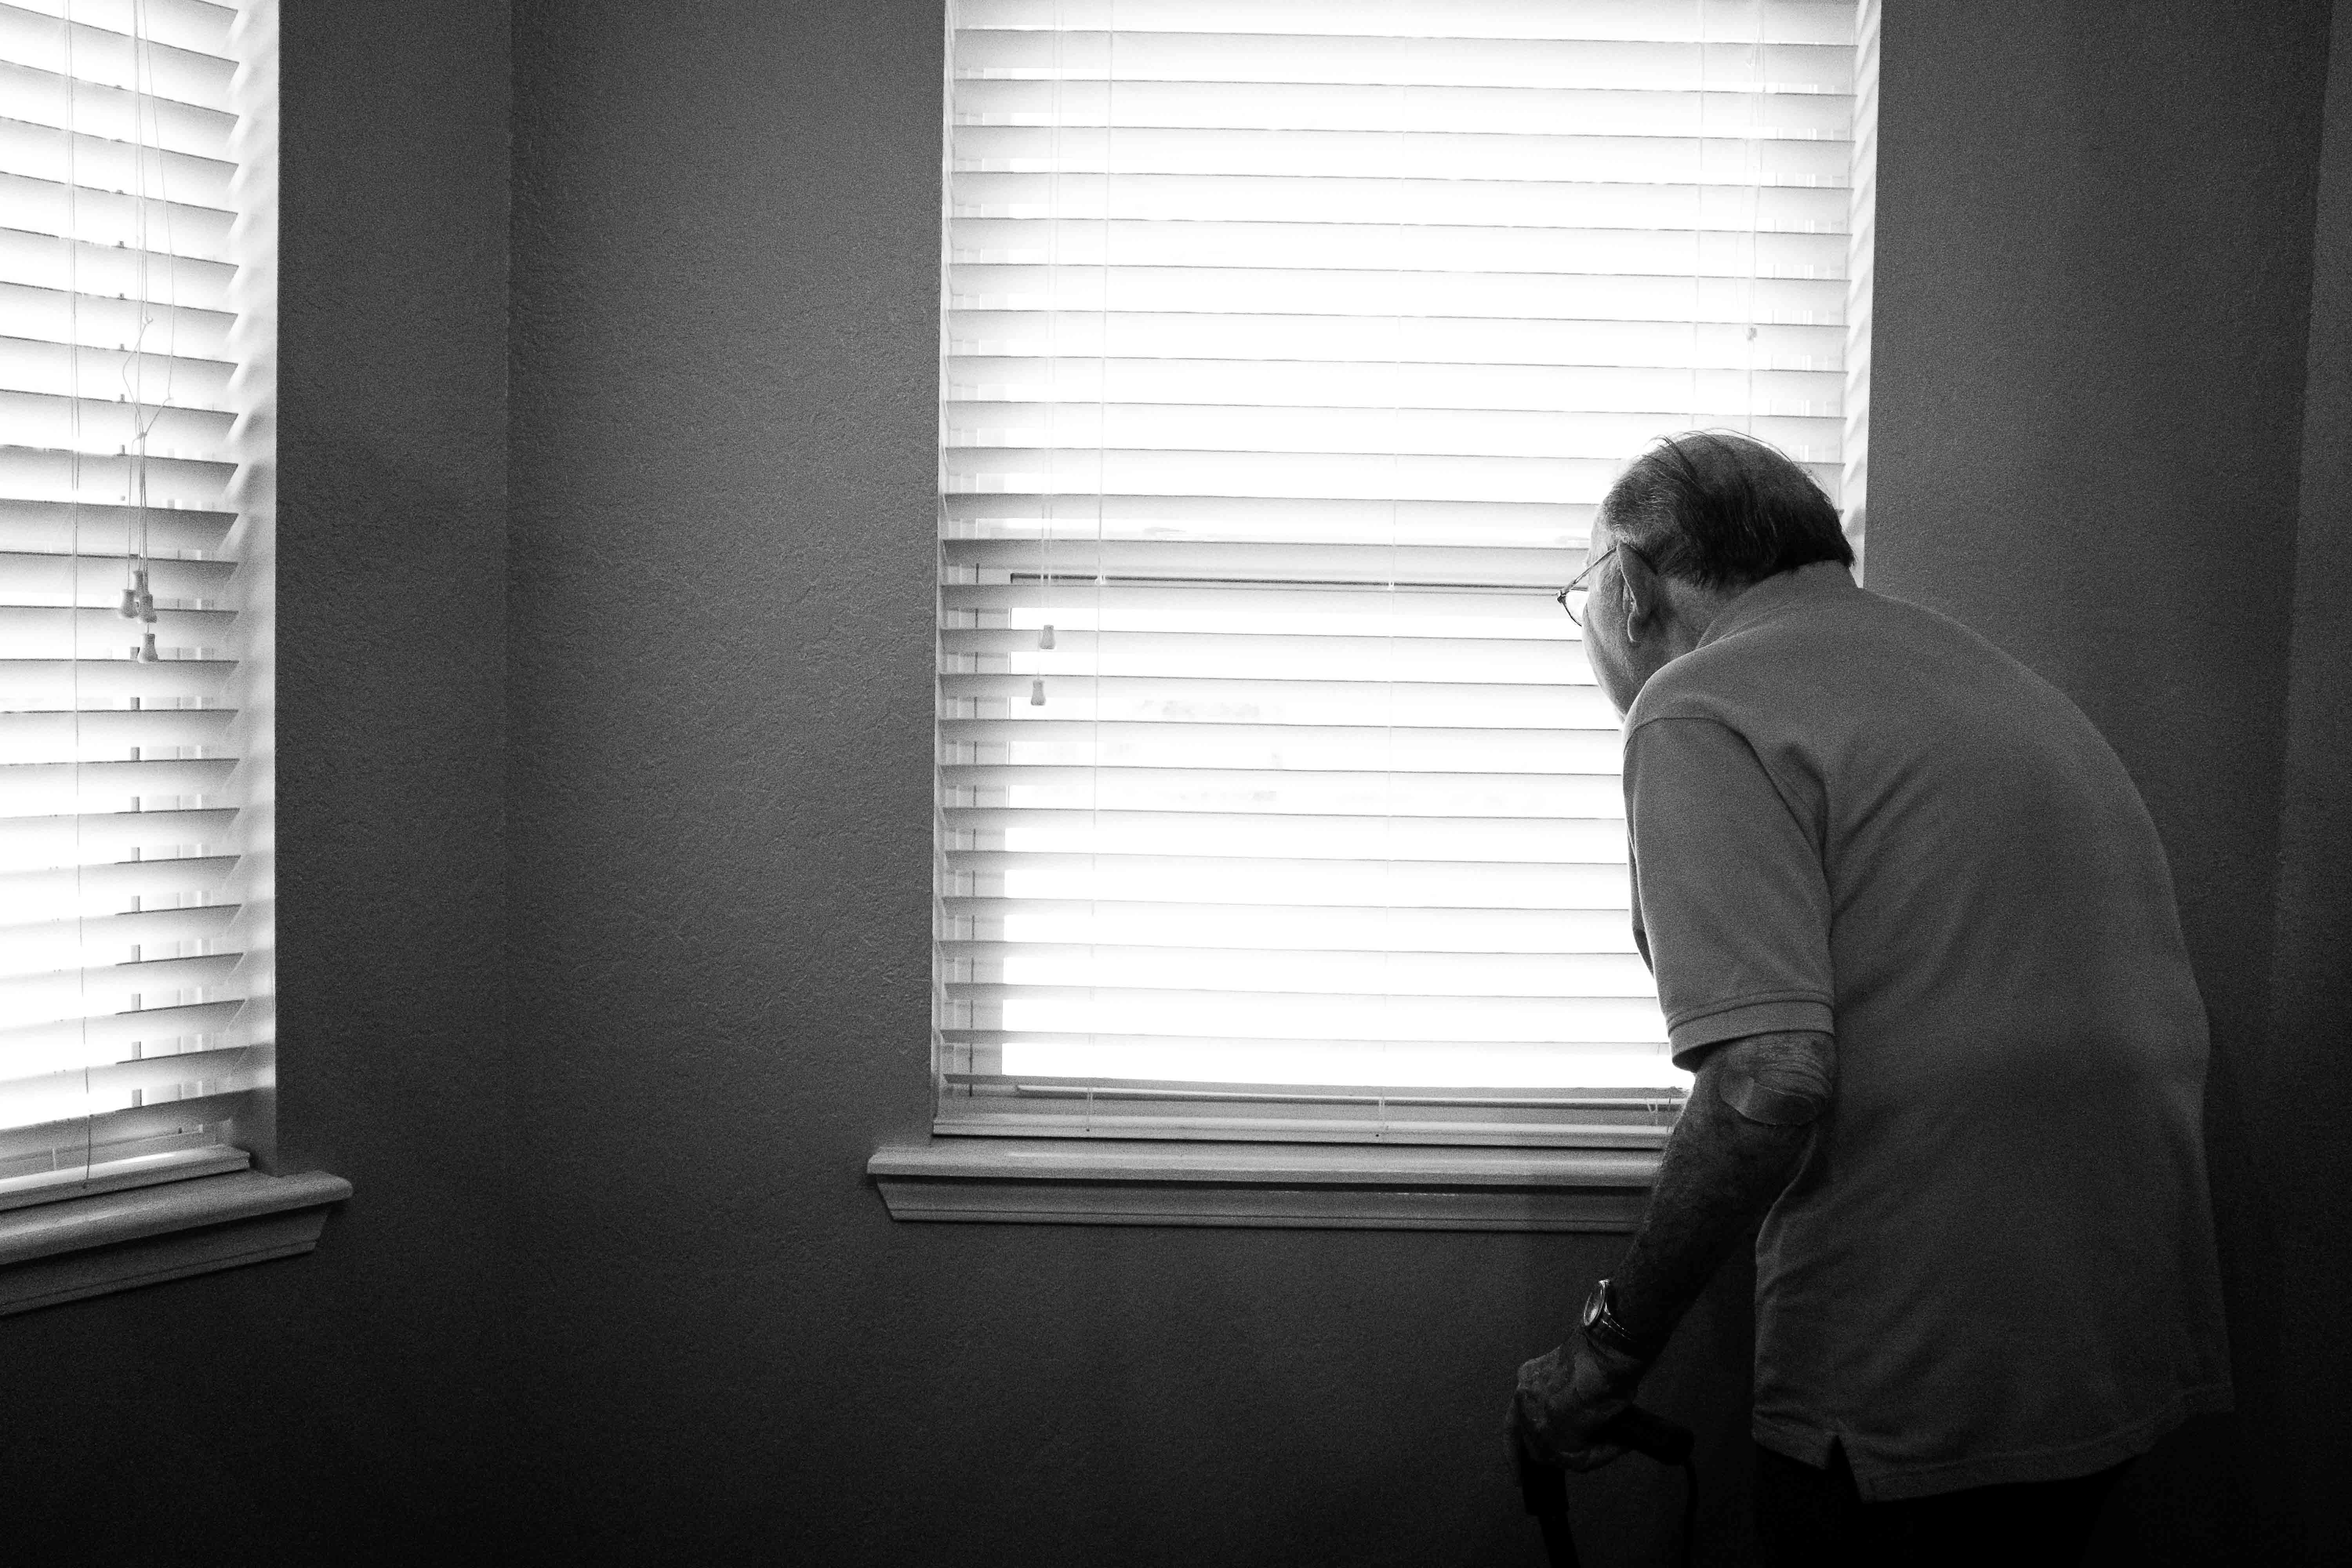 Lonely senior citizen looking out of the window